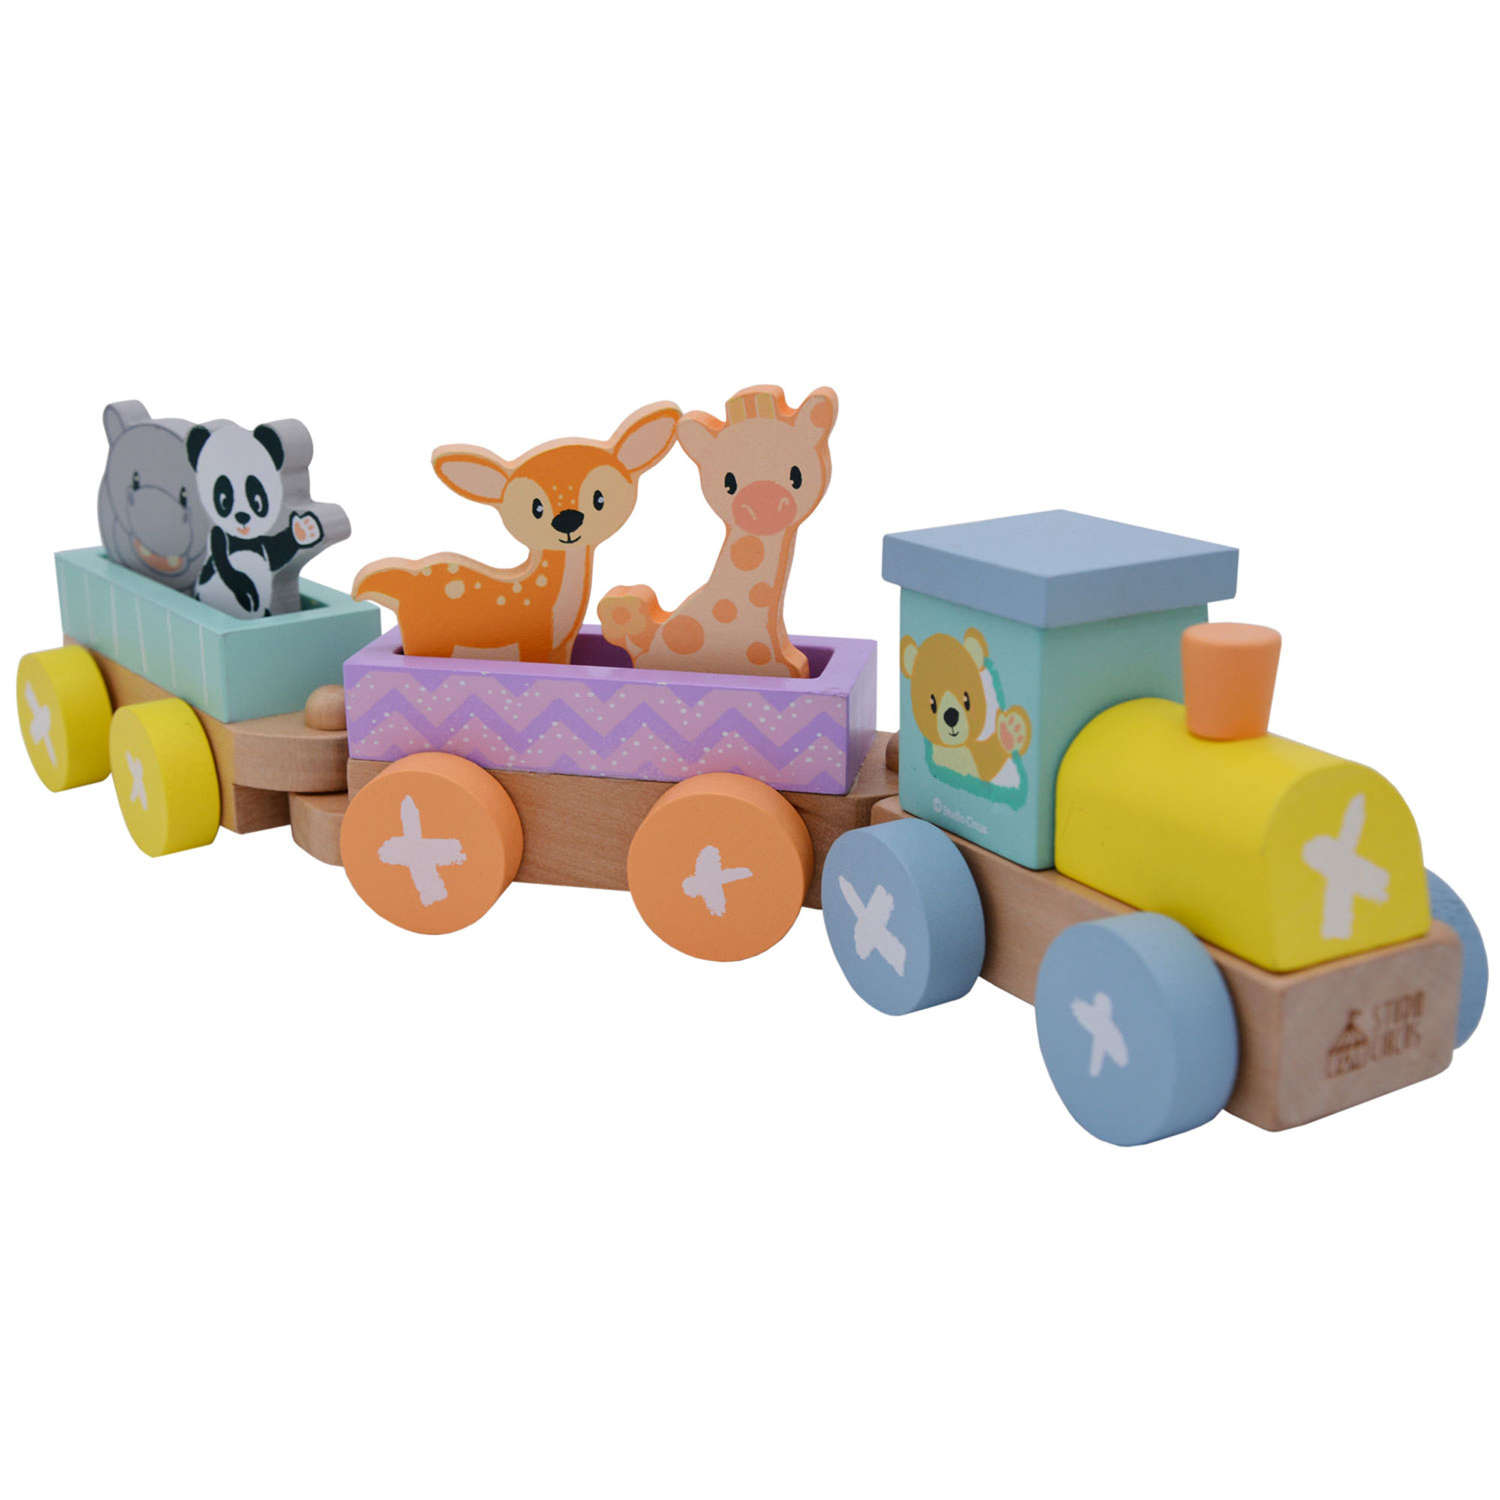 Pastel coloured train set with animals